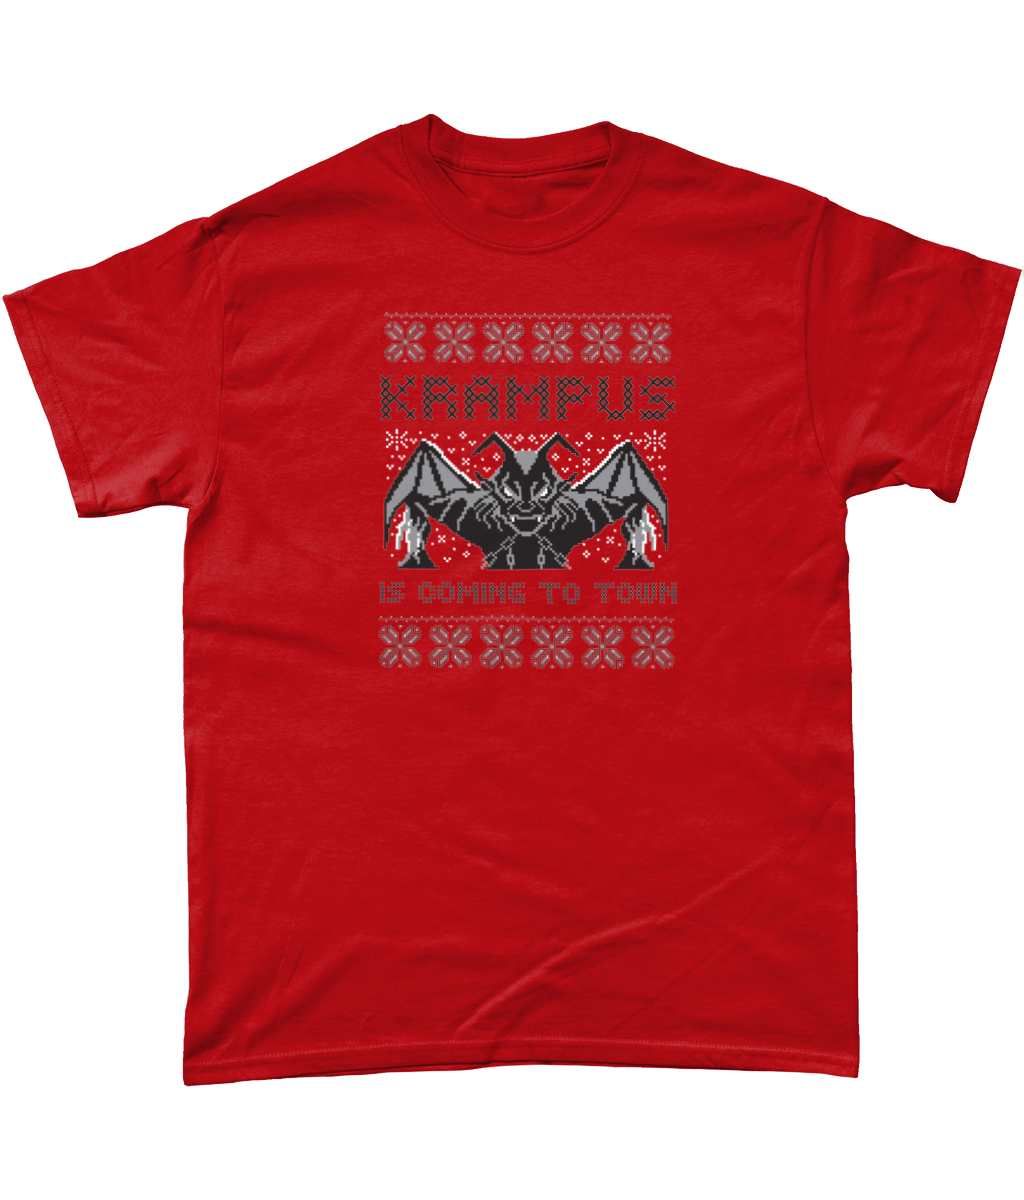 Krampus is coming to Town T-Shirt